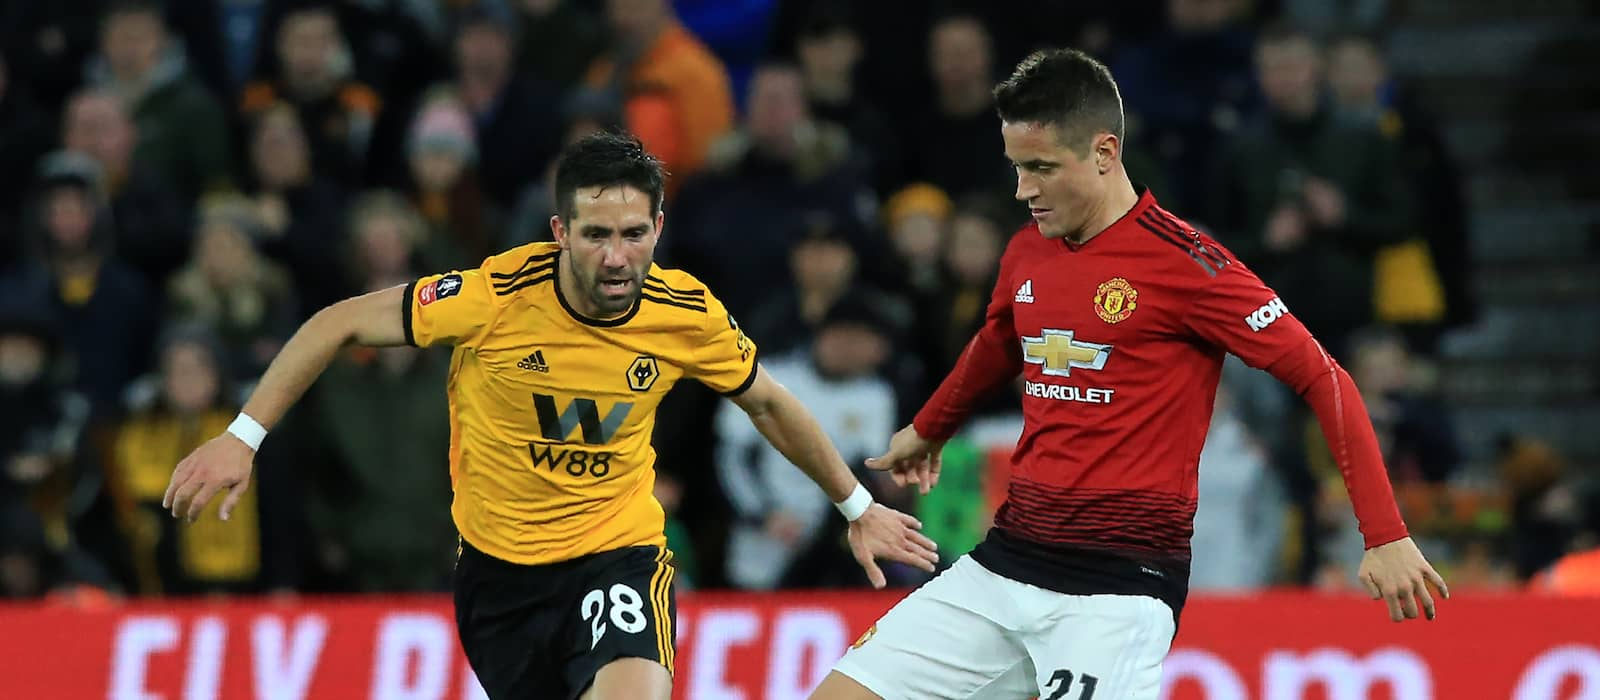 Manchester United vs Chelsea: Potential XI with Ander Herrera